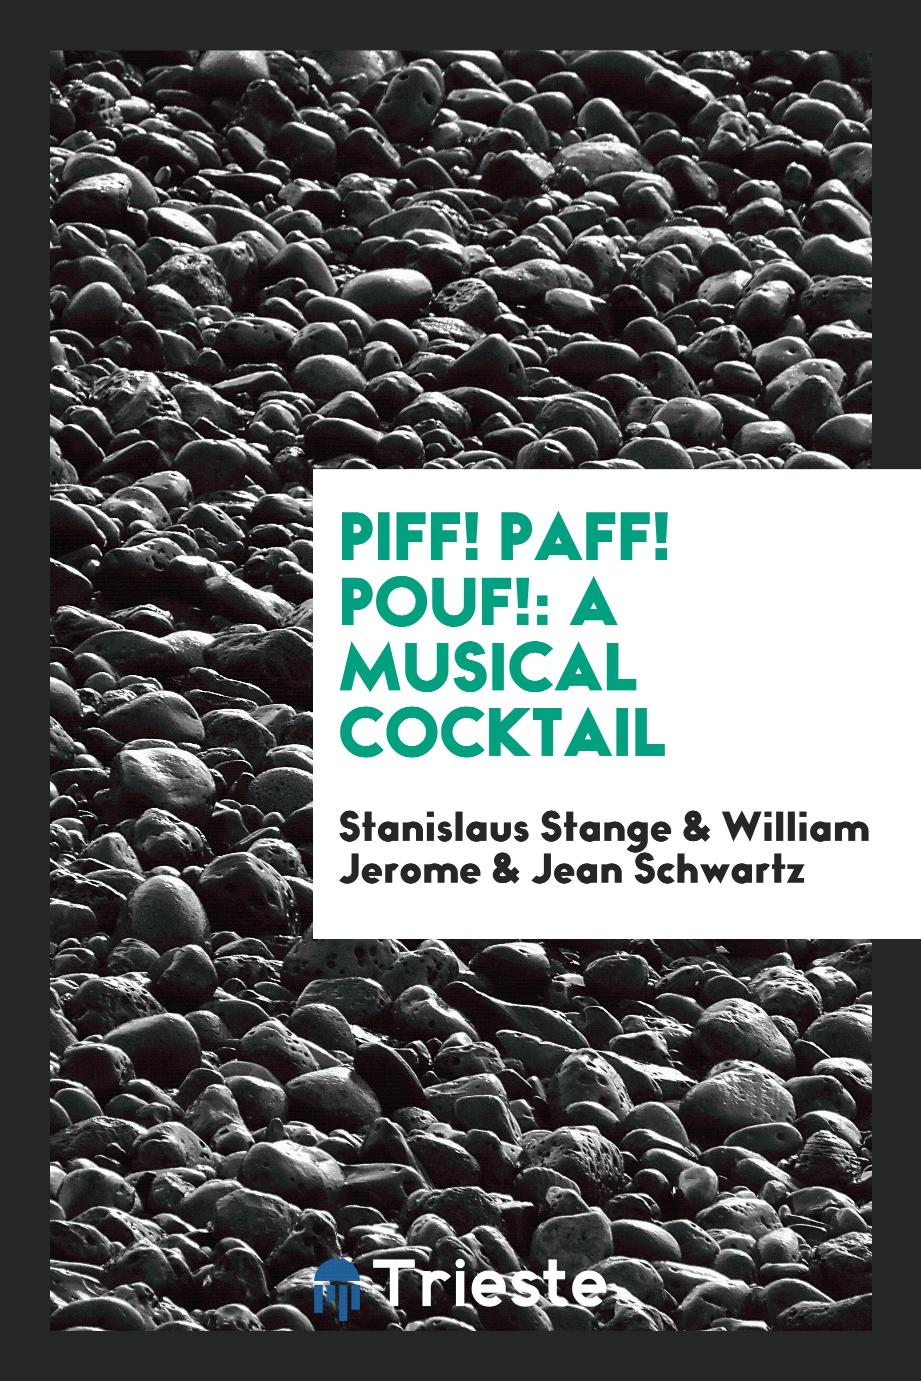 Piff! Paff! Pouf!: A Musical Cocktail